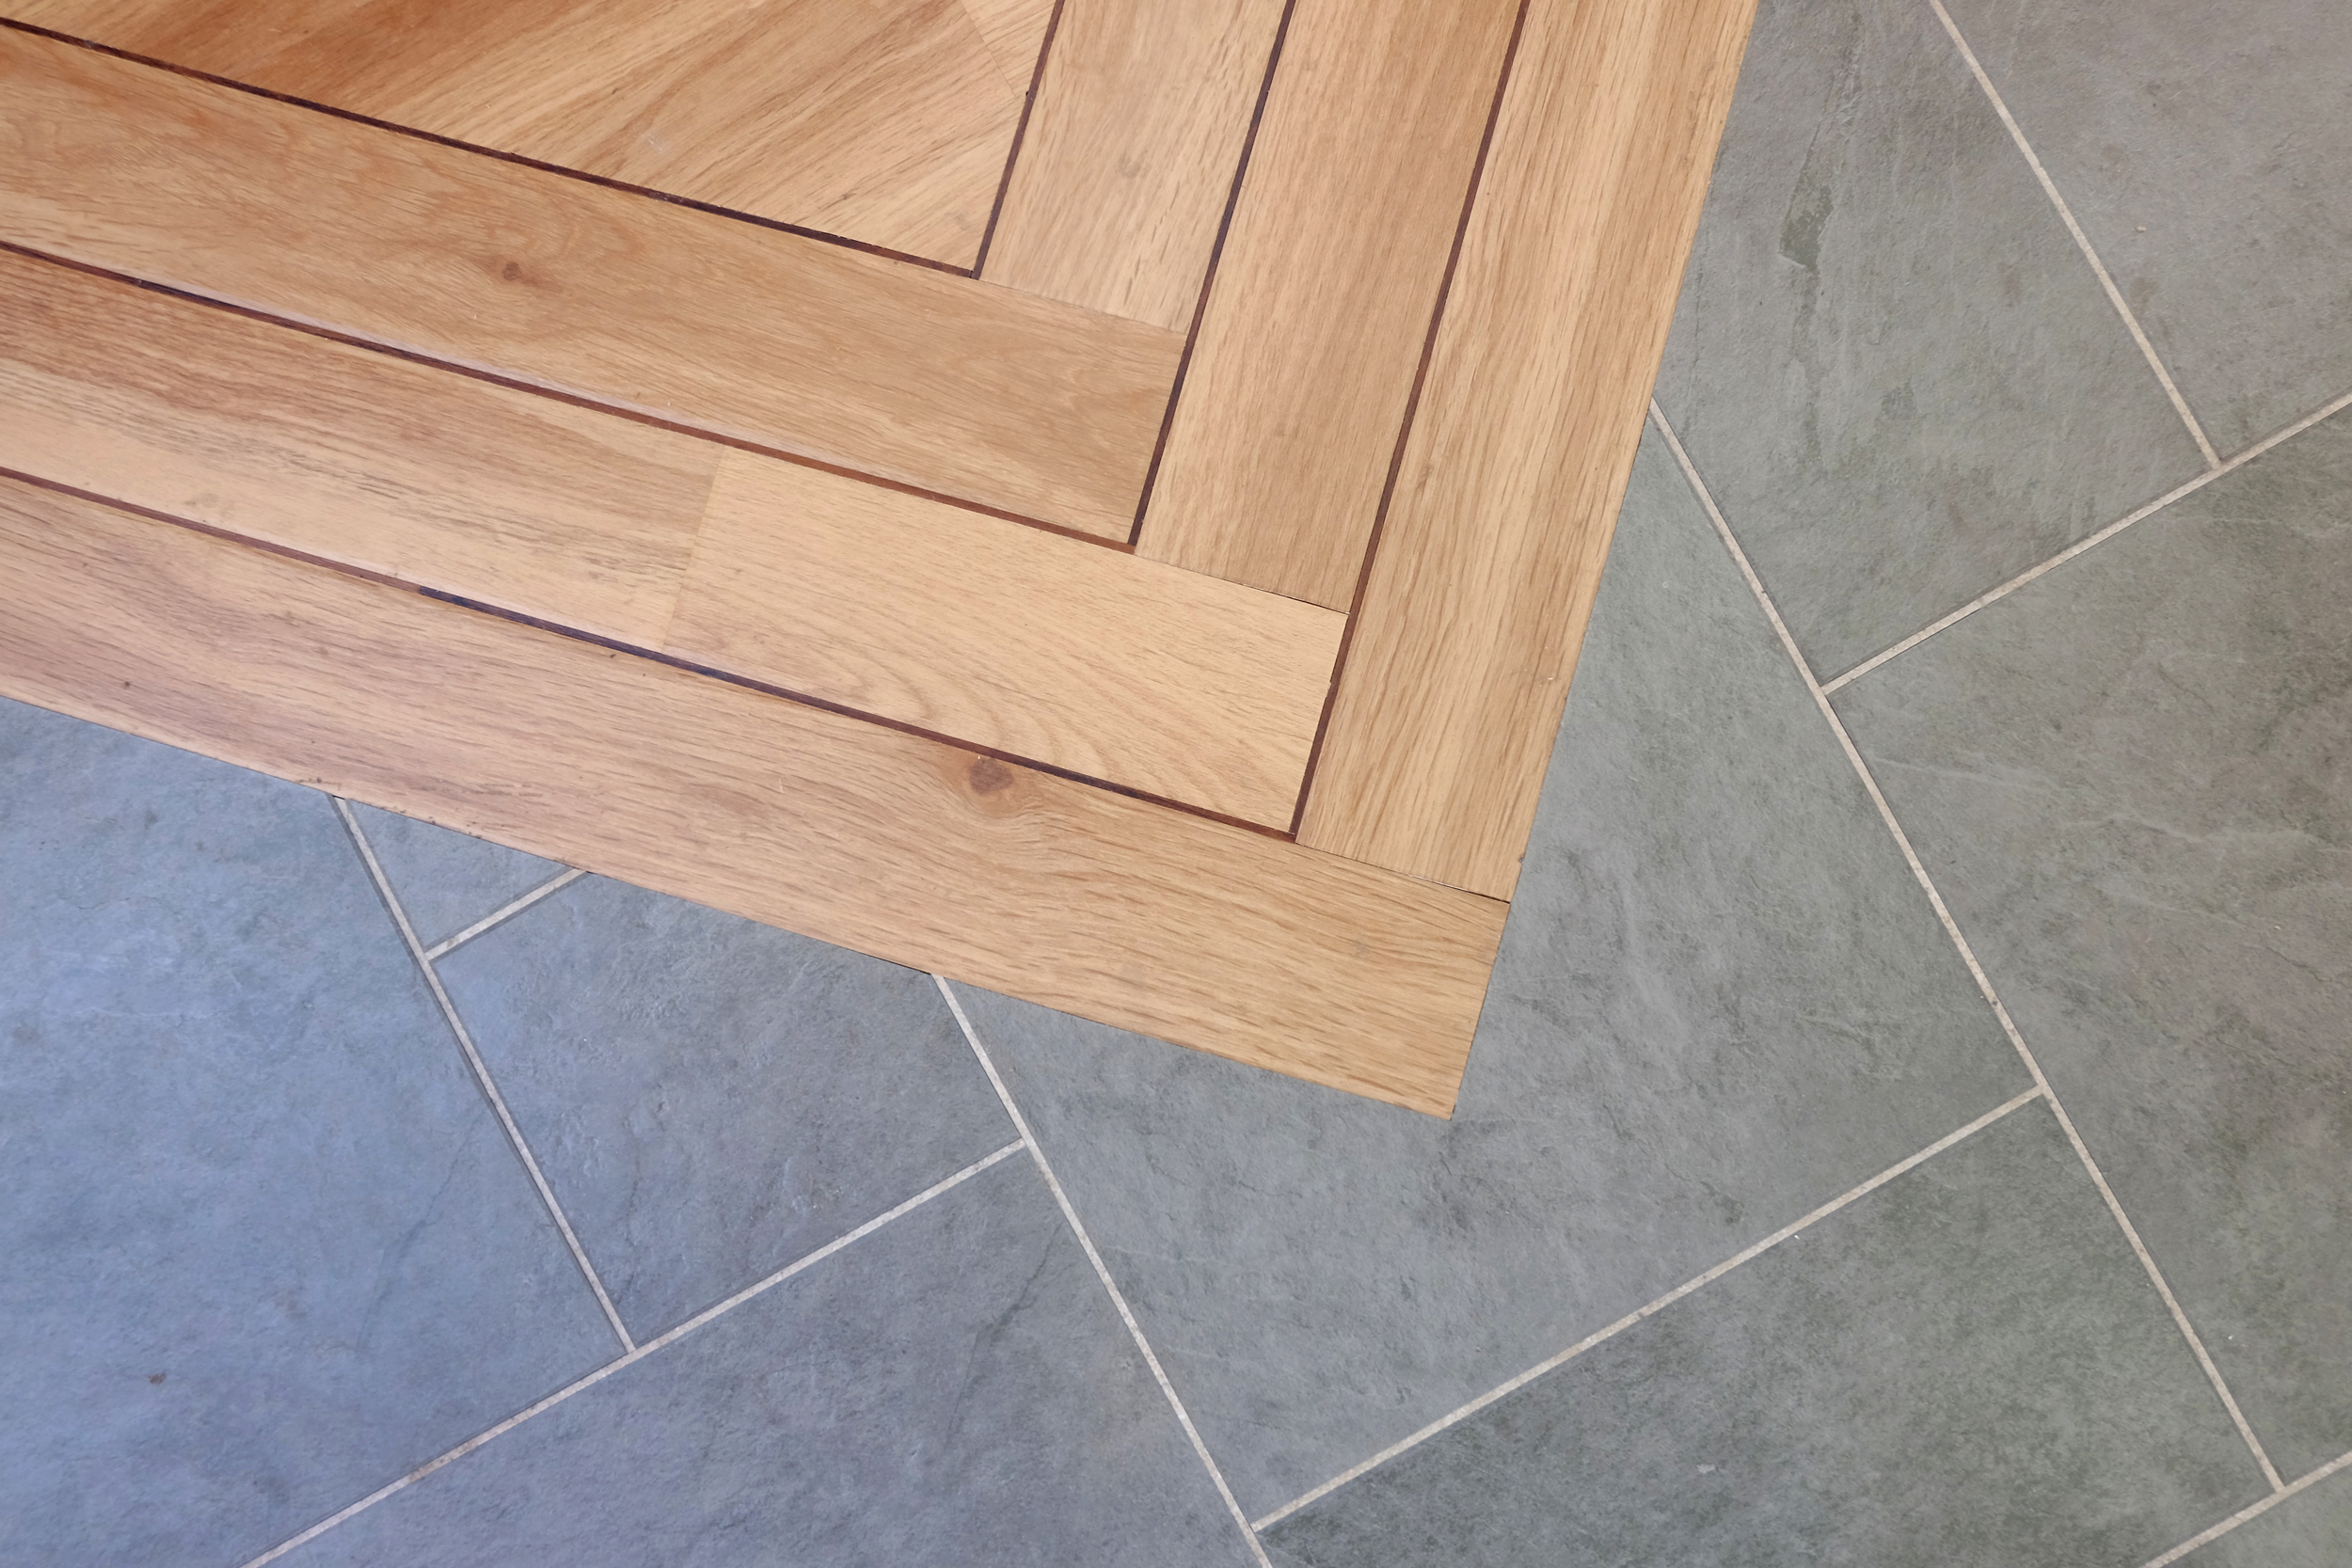 Kardean tile and wood effect flooring